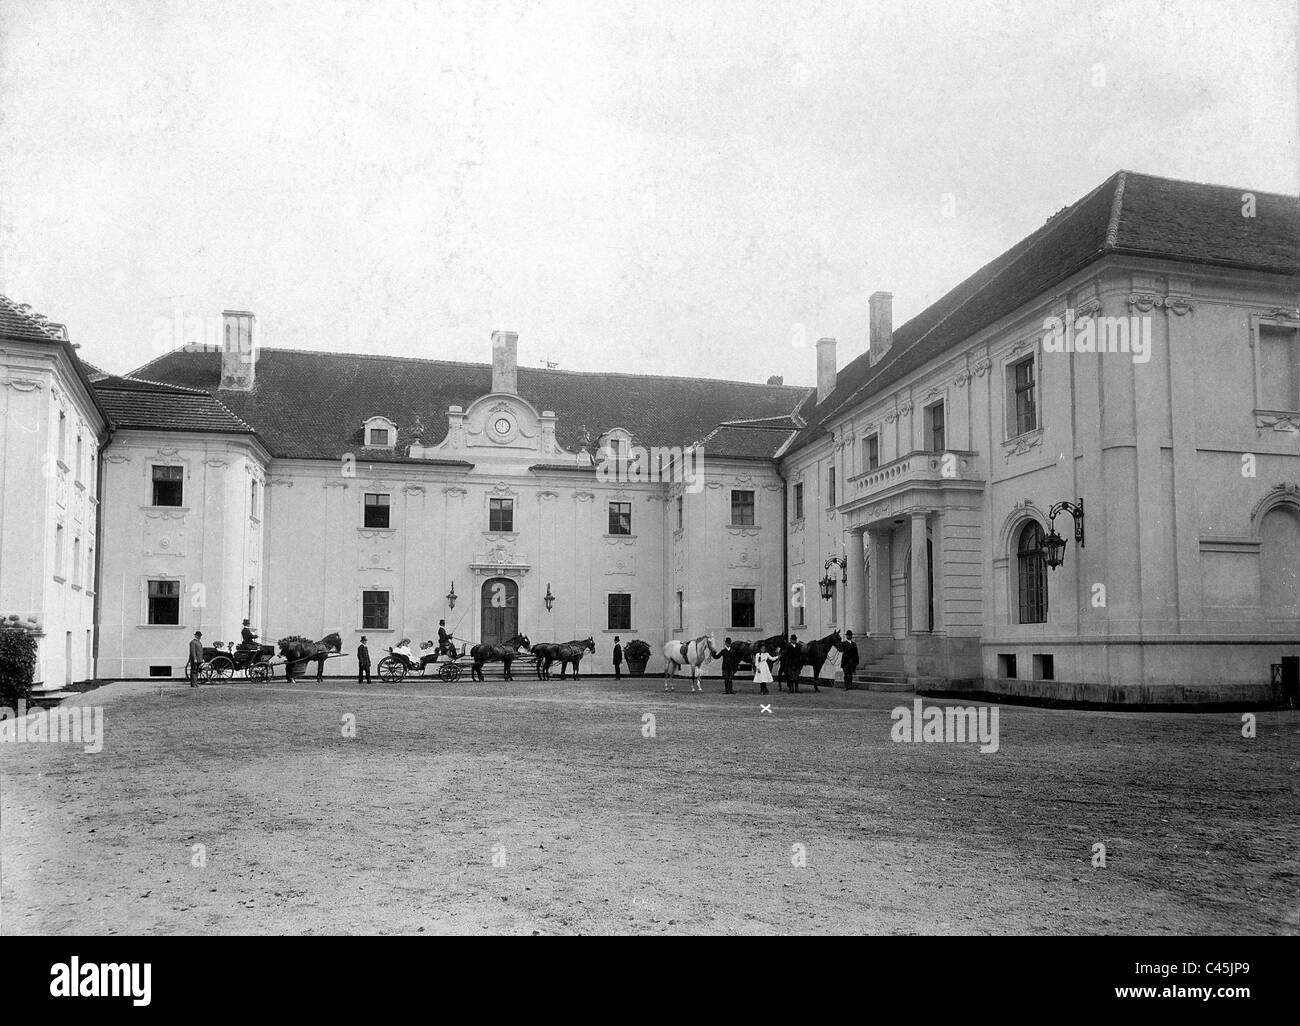 Castle courtyard of the palace Rauden of the Duke of Ratibor, 1910 - Stock Image